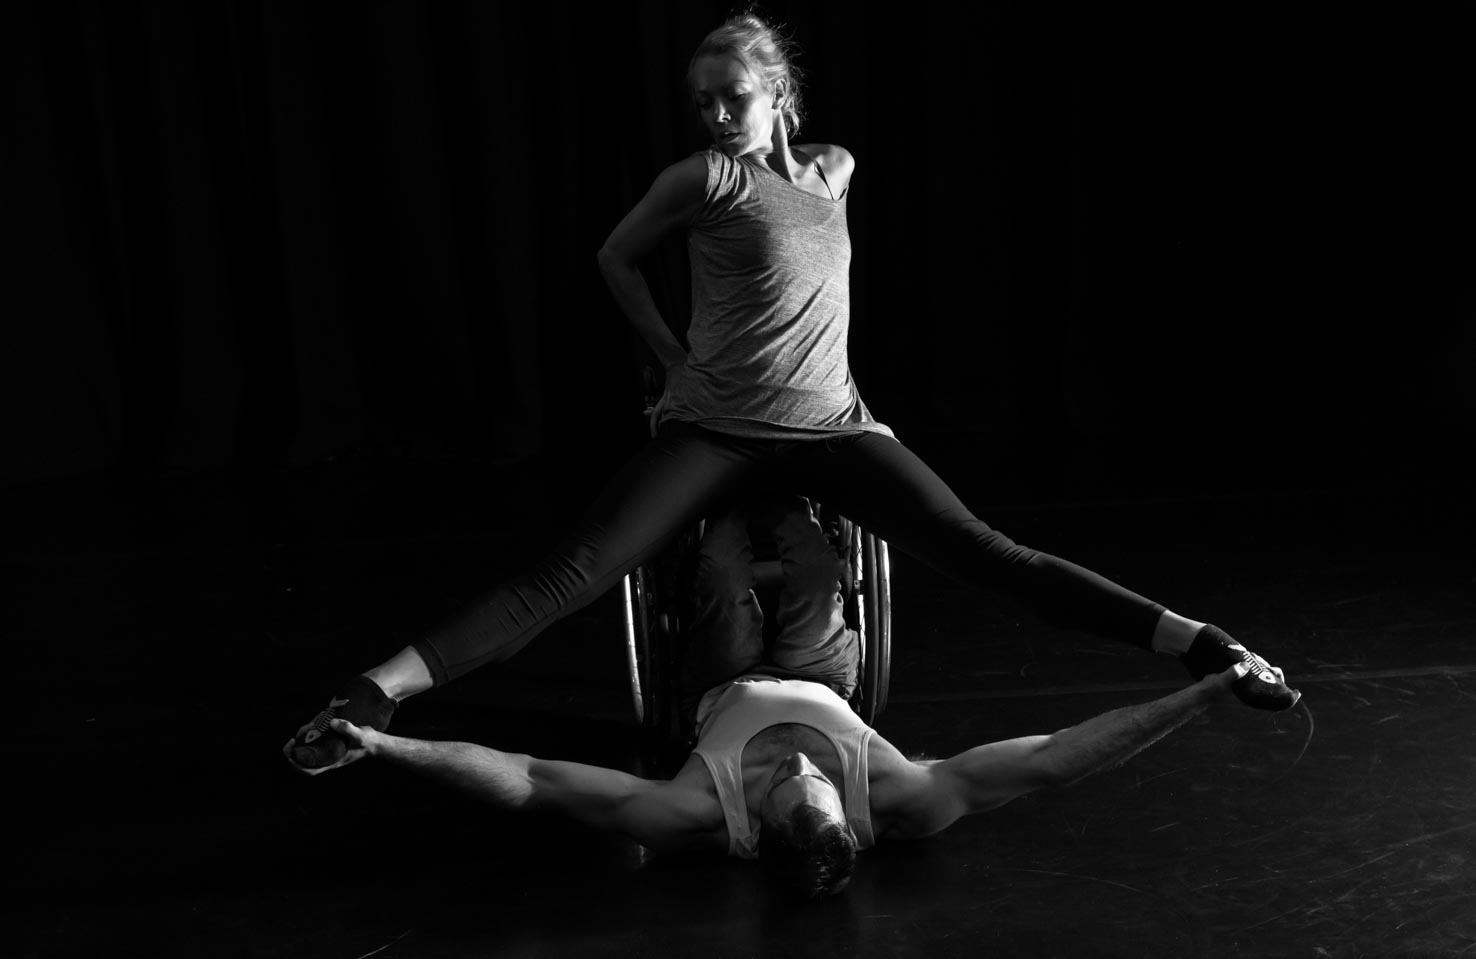 Two dancers performing. Joel is in a wheelchair lying on his back, with his arms extended. Eve is above him balanced on the overturned wheelchair, her legs supported by Joel's arms.